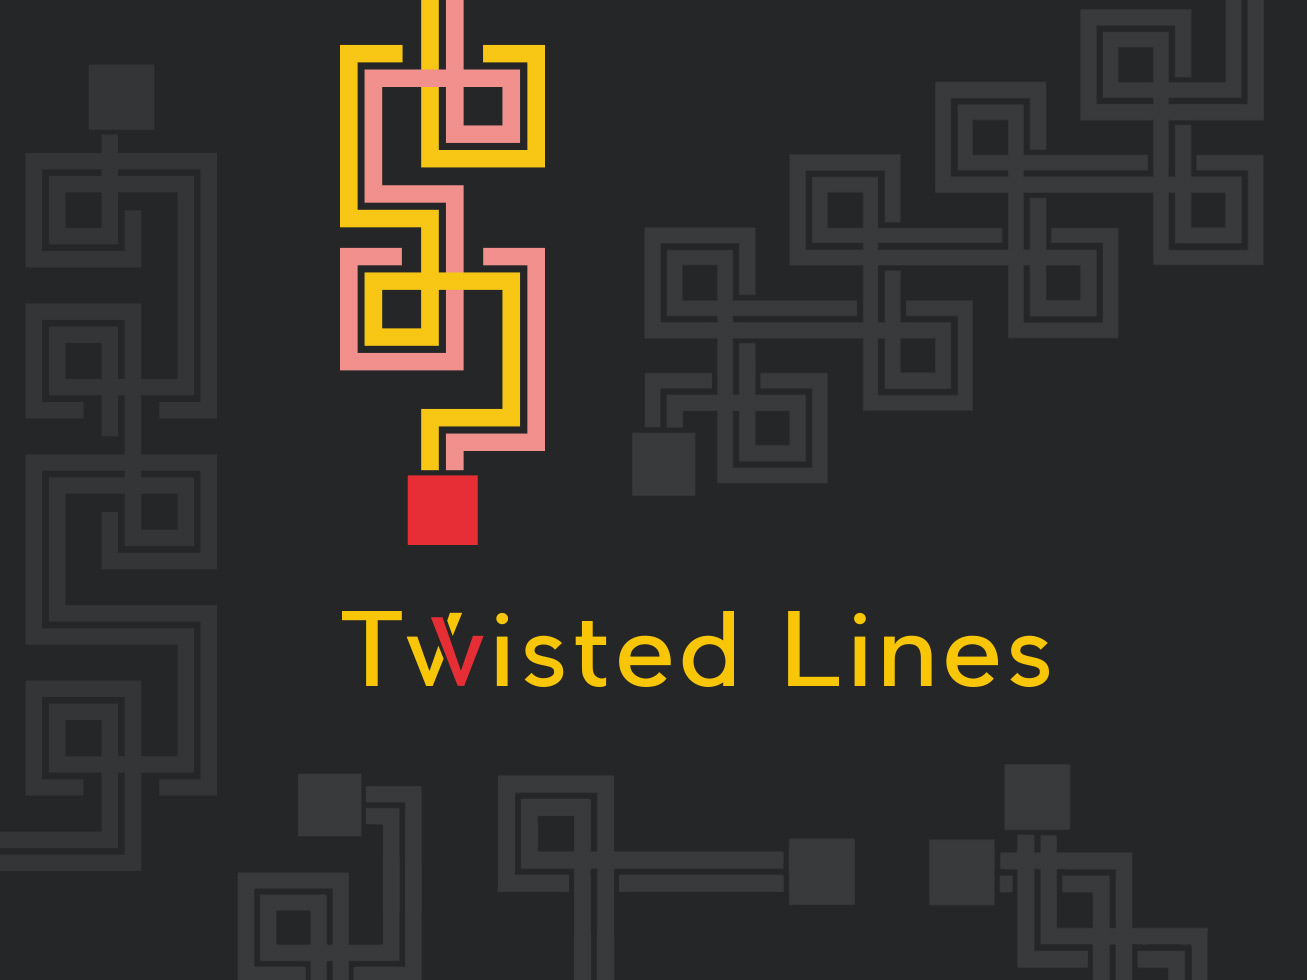 twisted_lines_banner_4-3.png